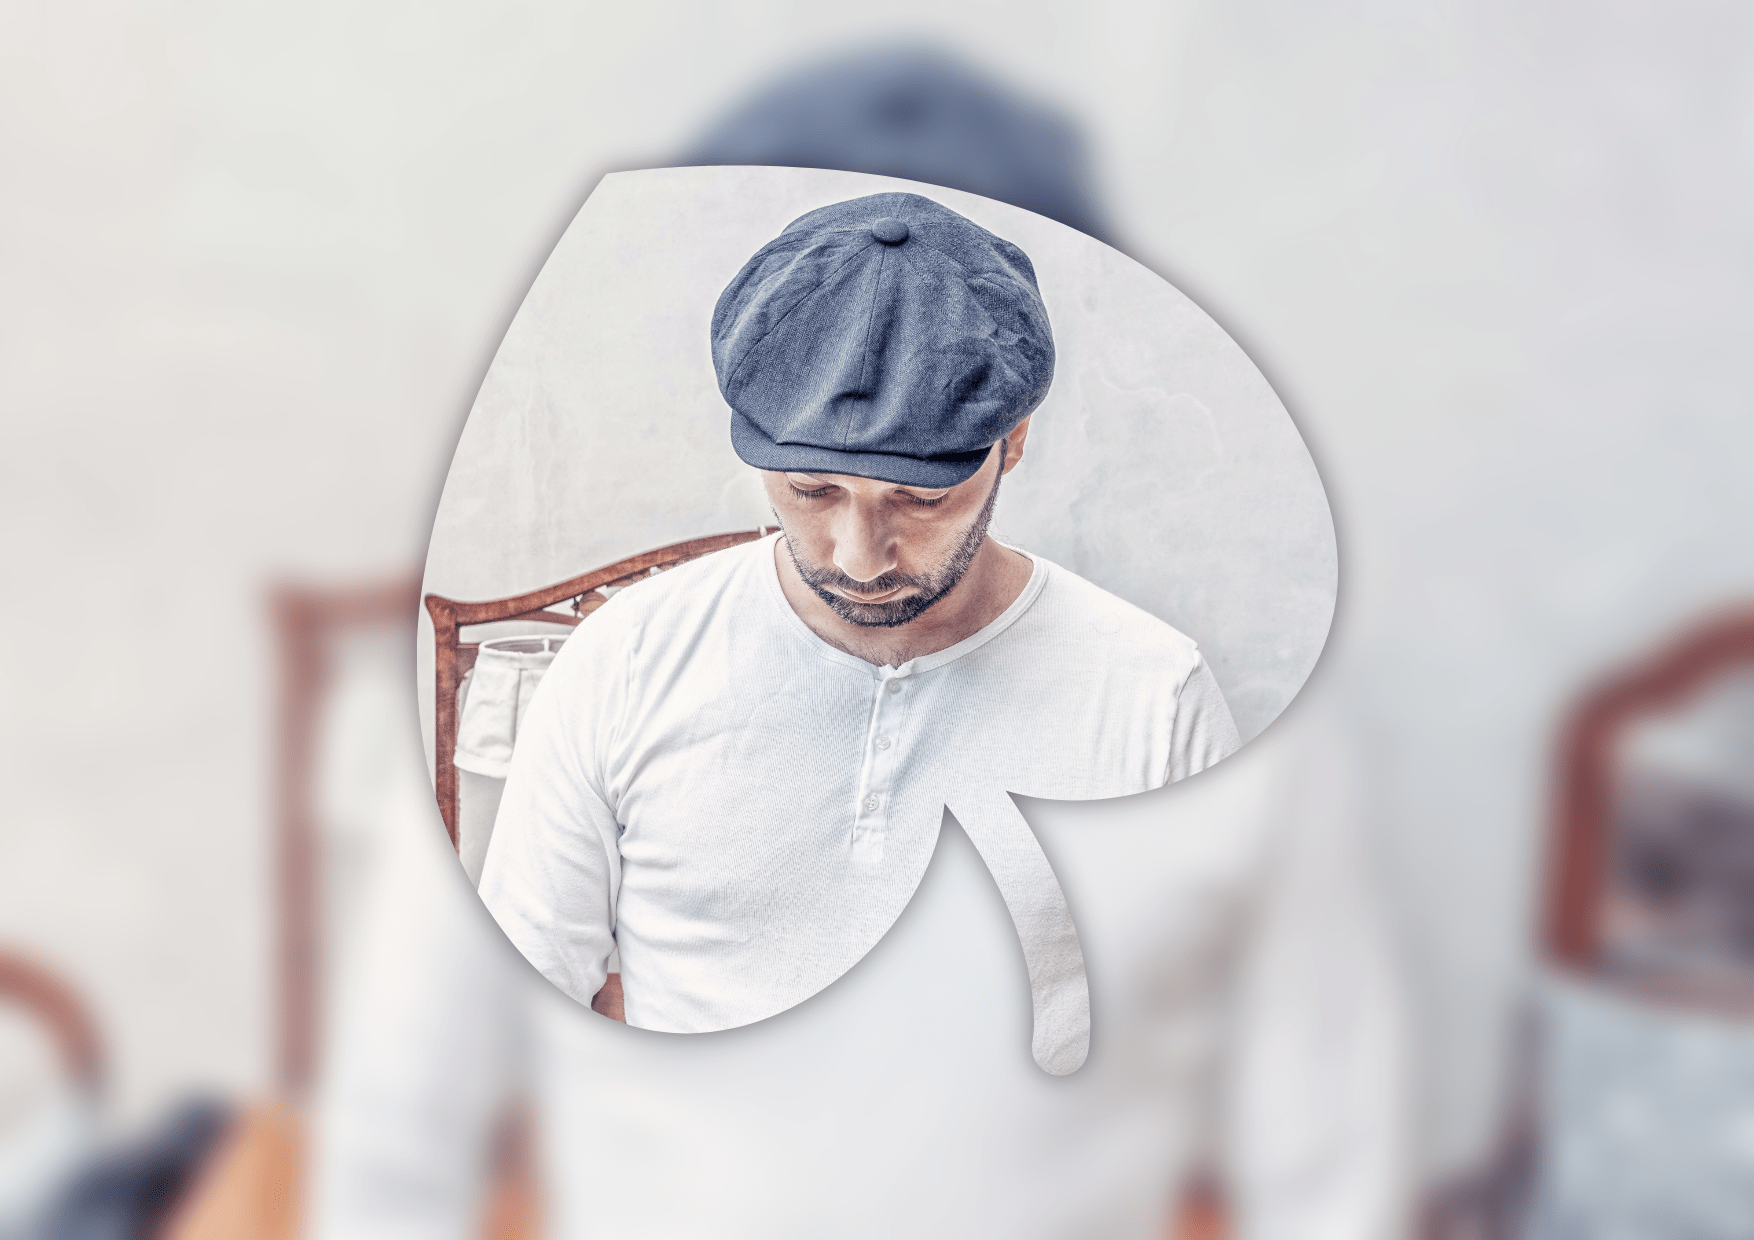 Person,                Professional,                Cook,                Mockup,                Frame,                Image,                Avatar,                White,                 Free Image